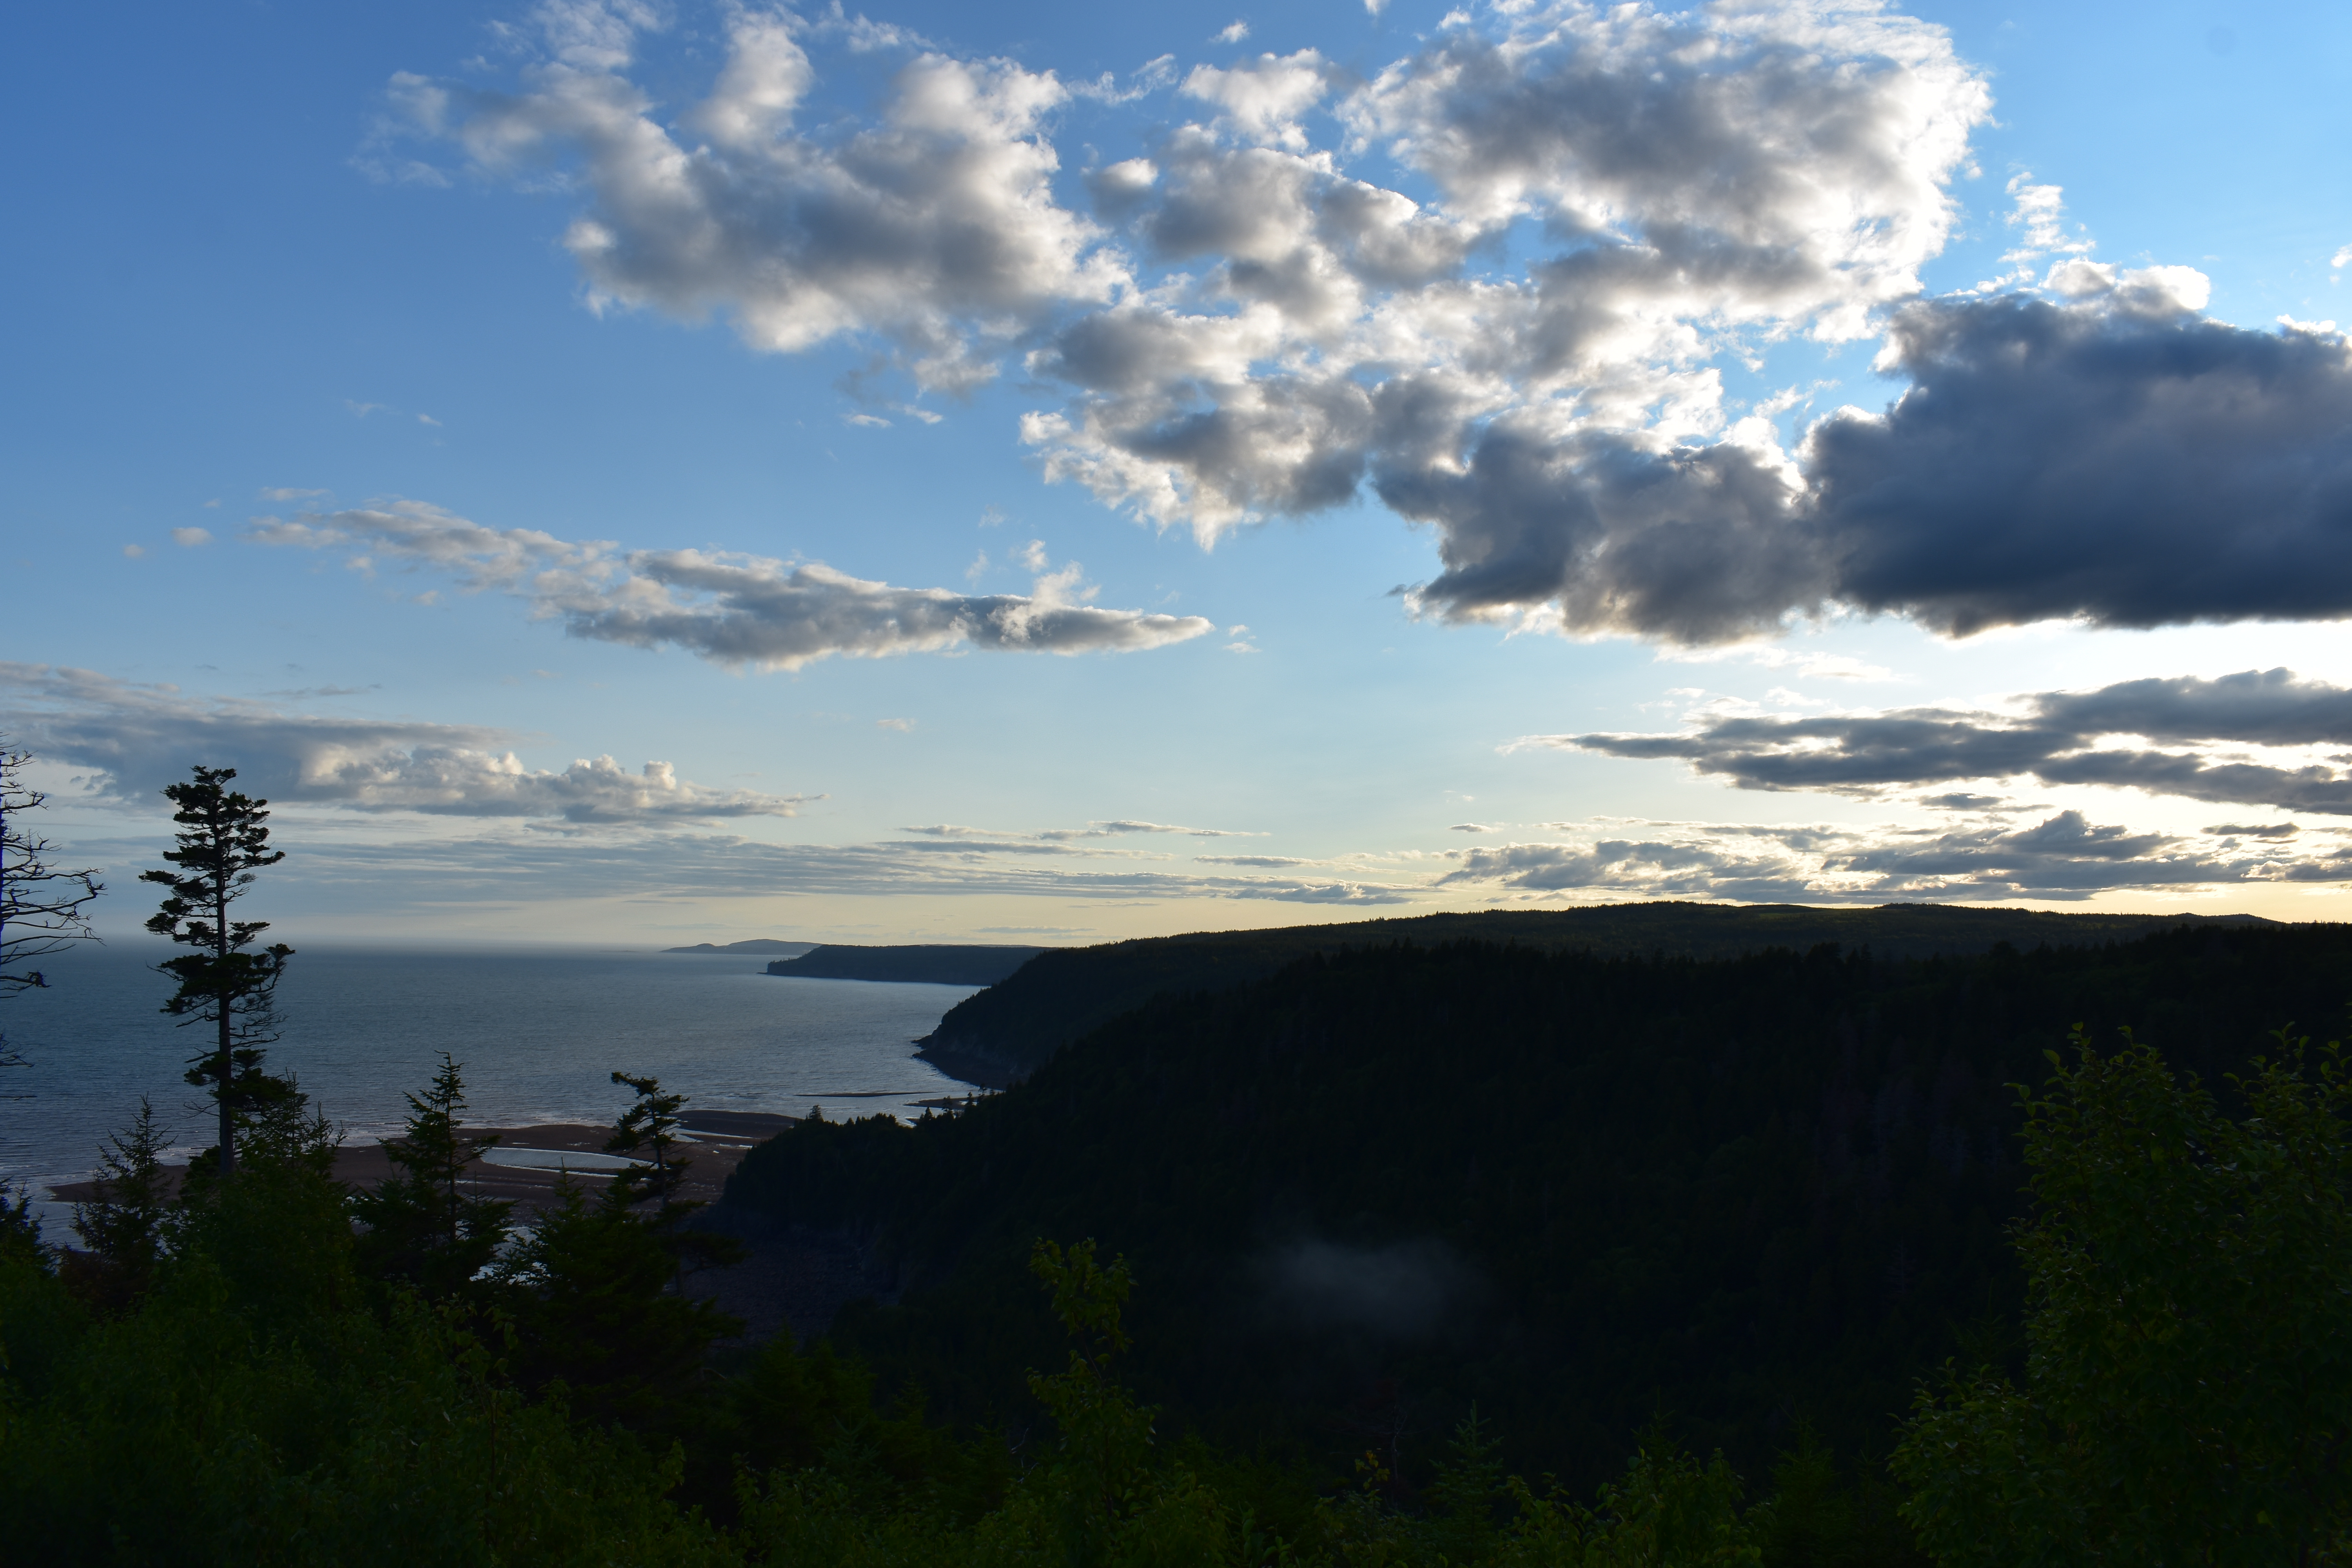 View of the Bay of Fundy at sunset